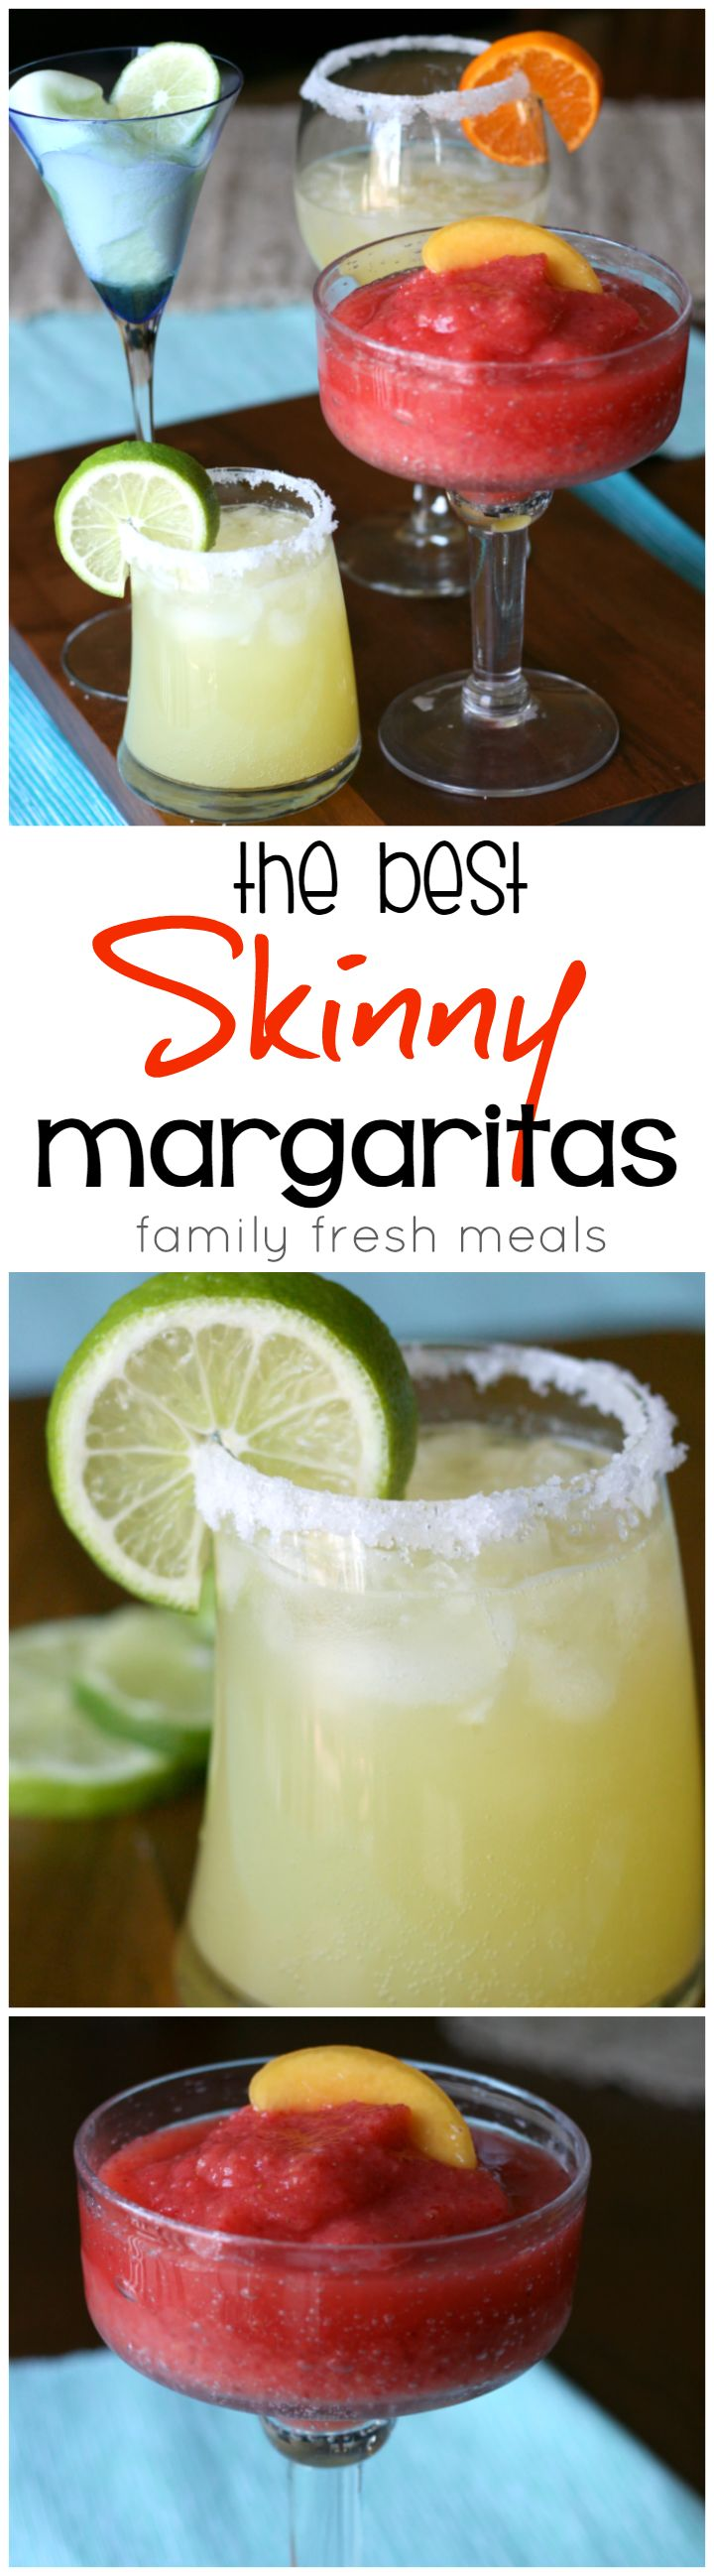 The Best Skinny Margarita Recipes. These are Super Skinny and super yummy!